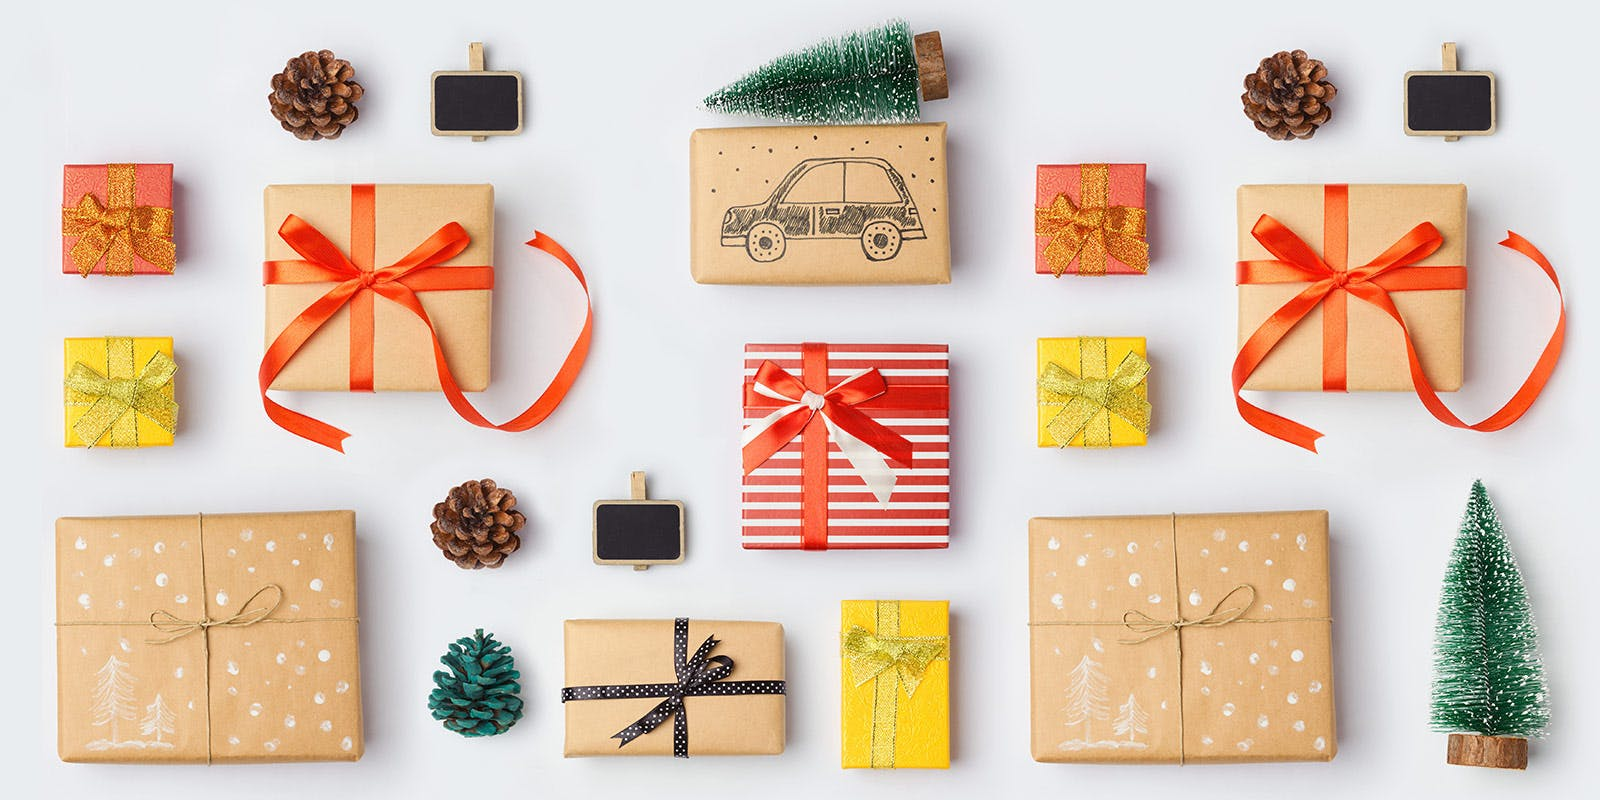 Author Gift Giving Guide